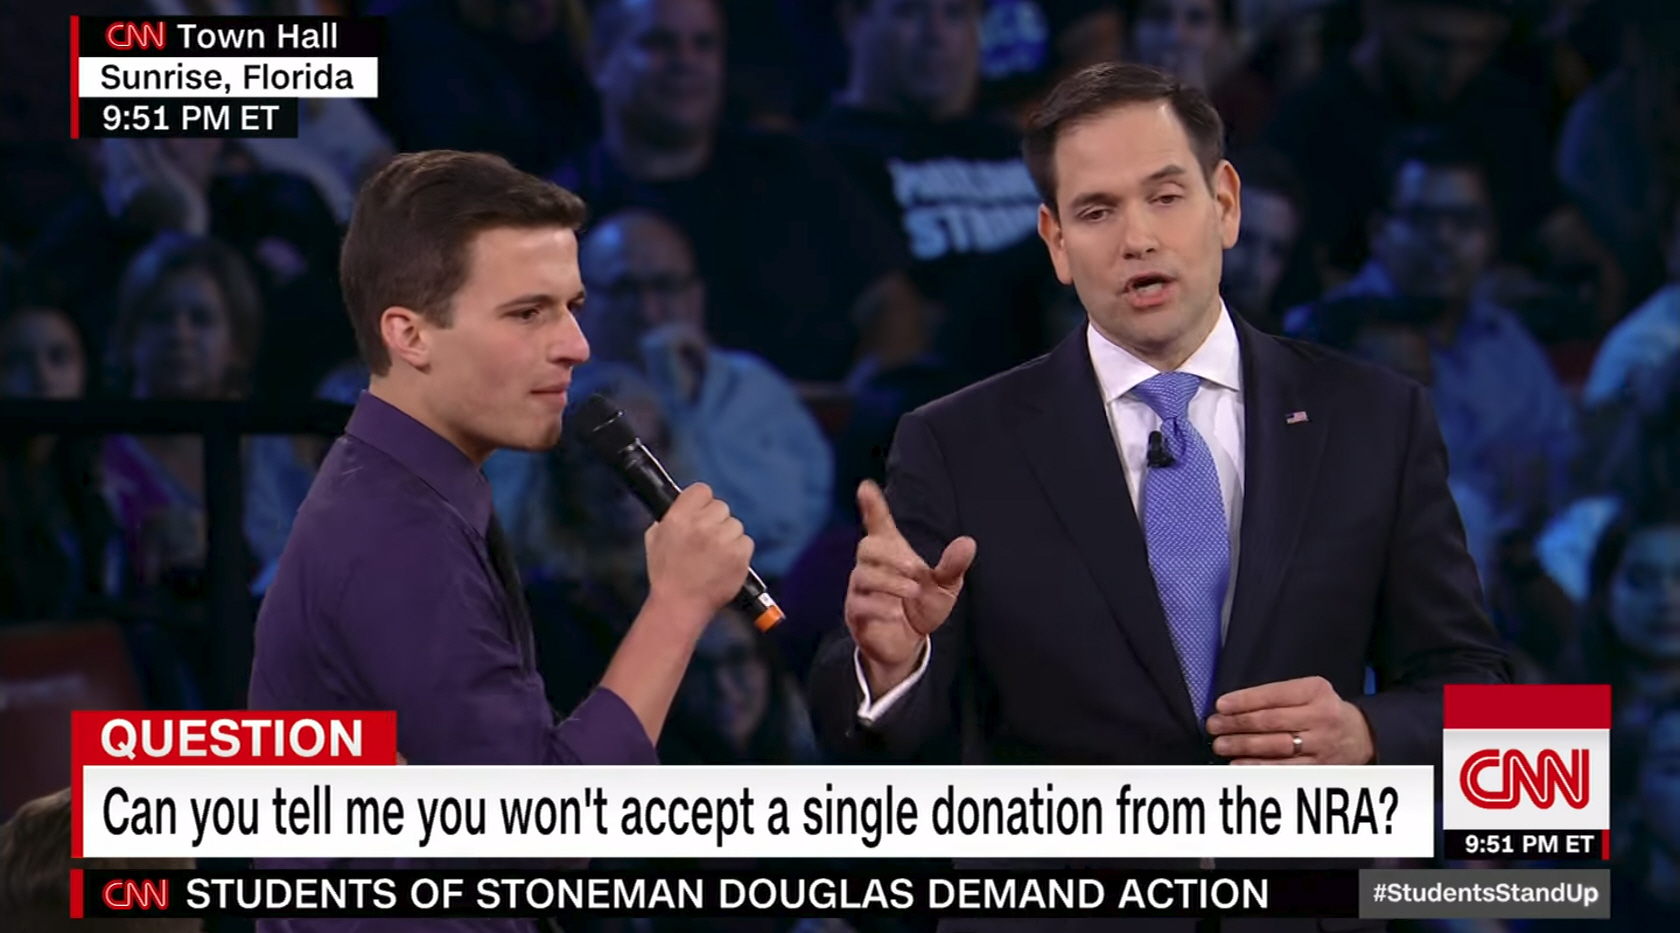 Marco Rubio during an appearance on CNN.